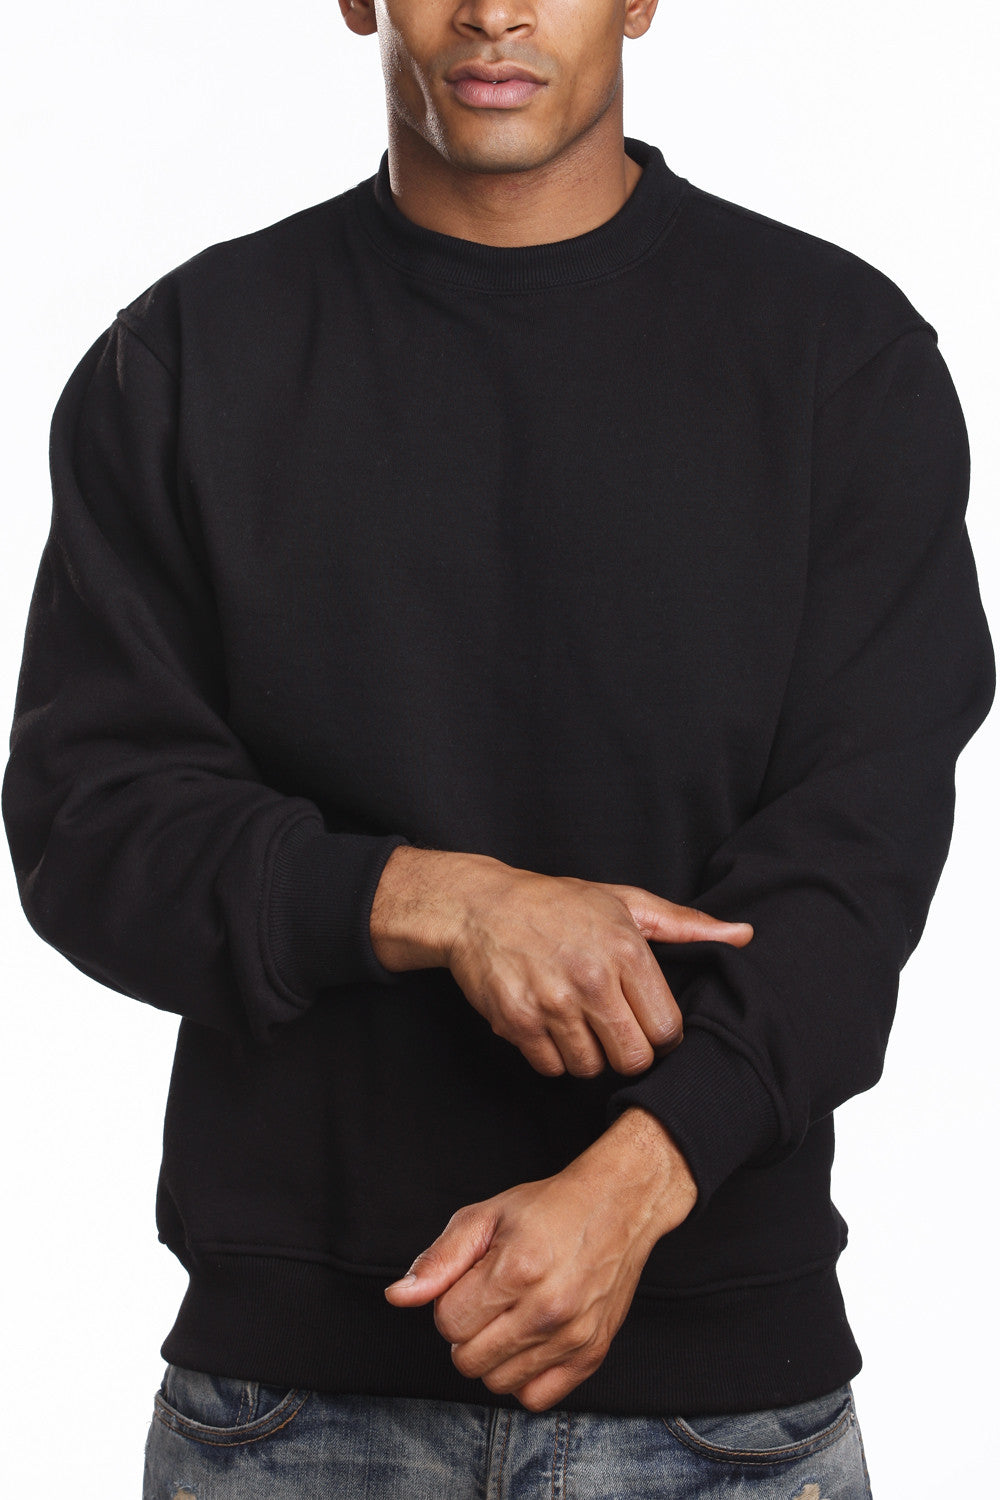 Fleece Crew Neck Sweater - Pro 5 Apparel